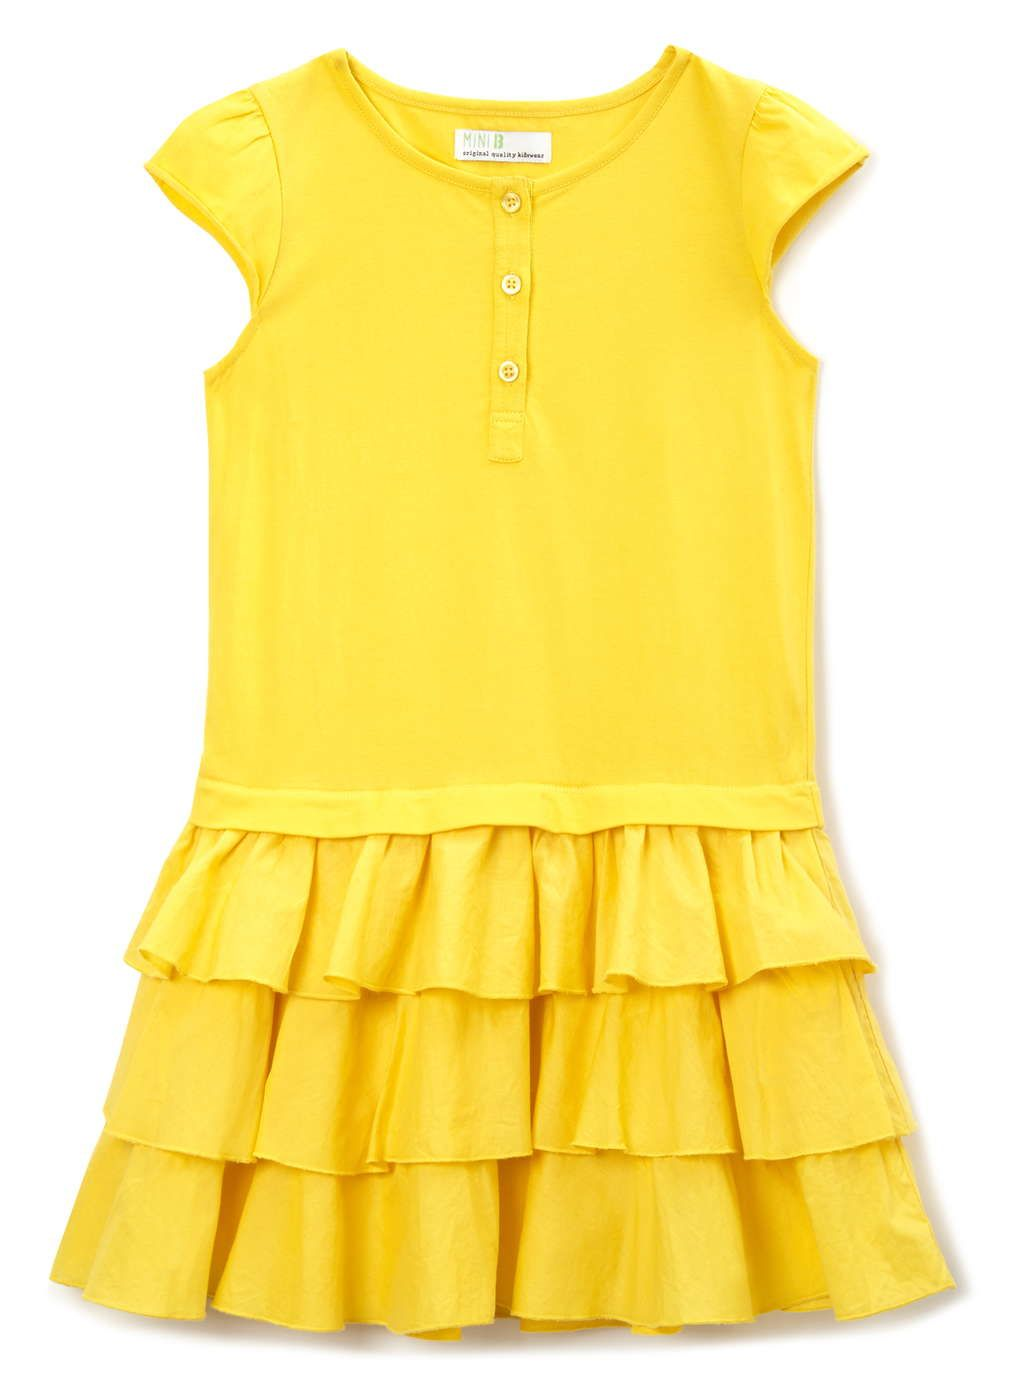 18 month - 8 years - BHS UK Girls Yellow Jersey RaRa Dress £7.20 ...